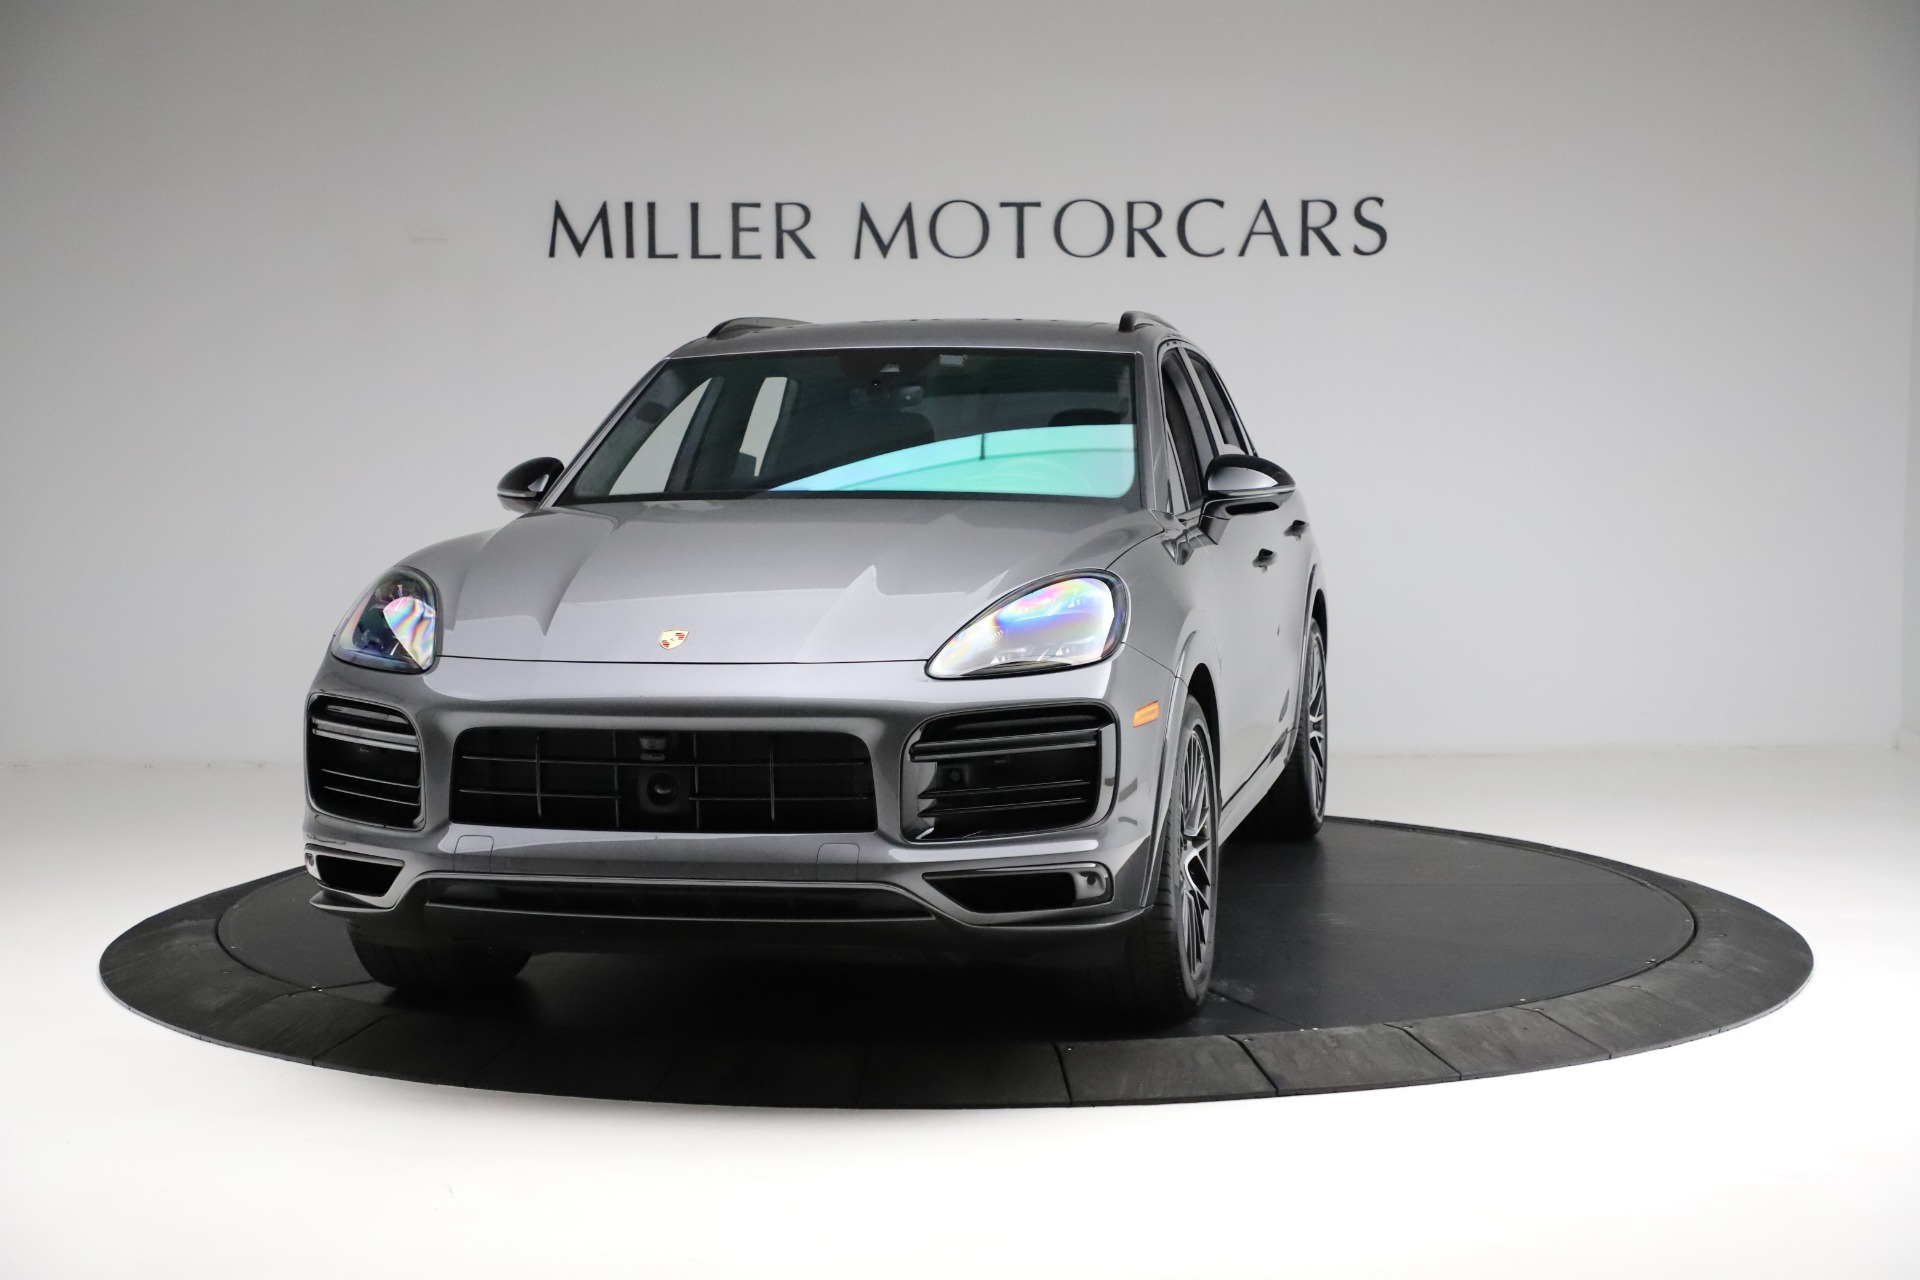 Used 2020 Porsche Cayenne Turbo for sale $145,900 at Pagani of Greenwich in Greenwich CT 06830 1